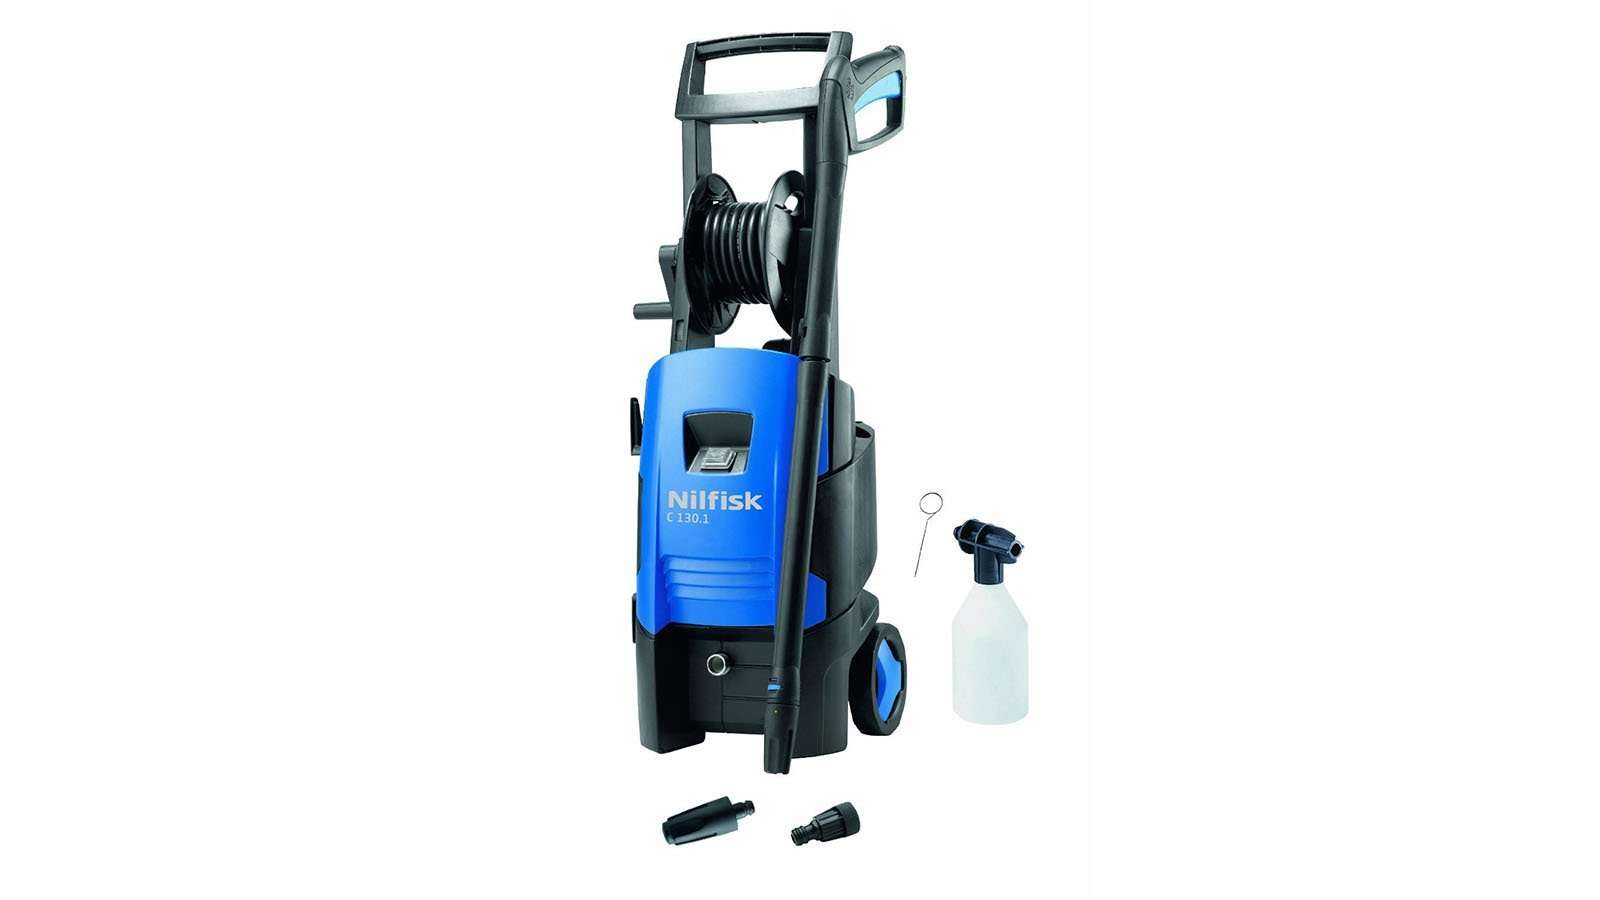 Nilfisk C130 1-6 Xtra Pressure Washer review